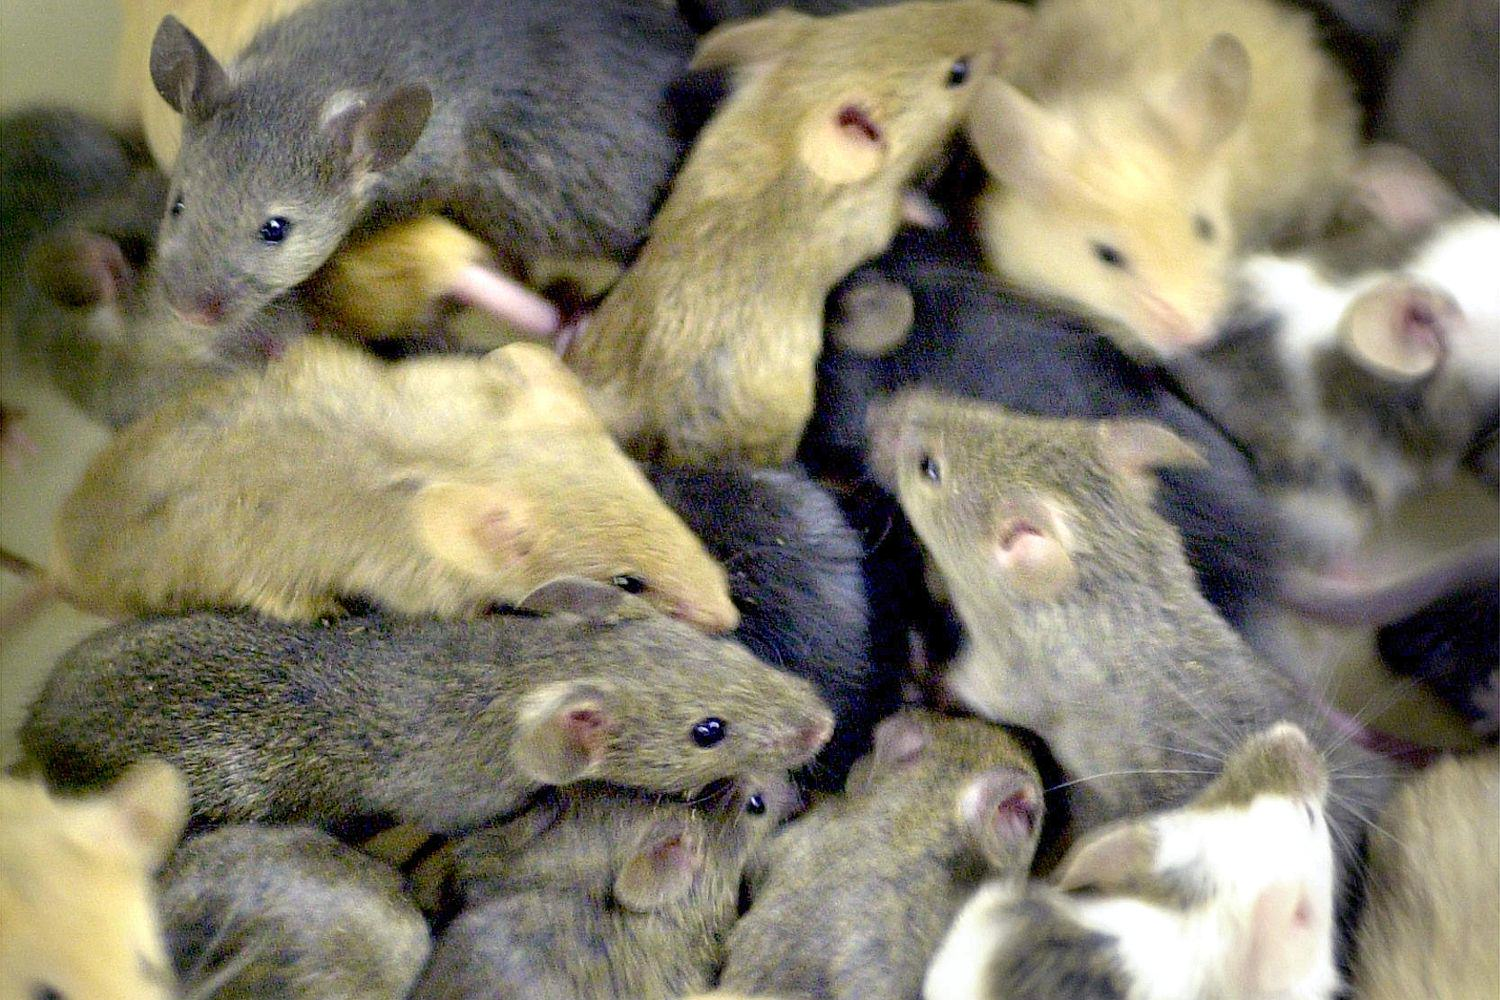 Forget Giant Mutant Rats, Plague Of Super Smart Mice To Hit UK UNILAD 03 03131052 e5a580 2548072a31624